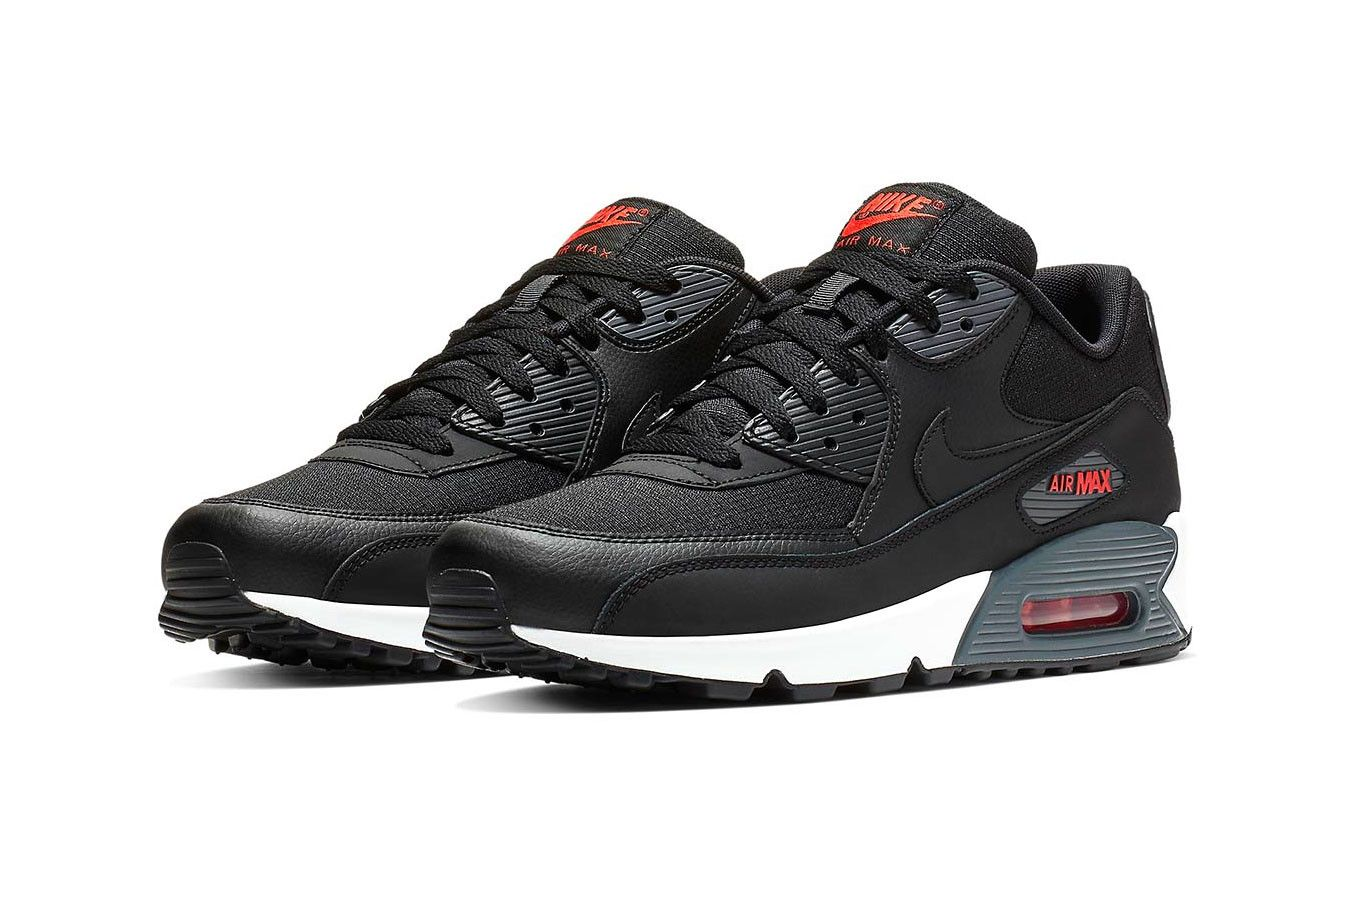 Nike S Air Max 90 Gets Hit With Hot Habanero Accents Nike Air